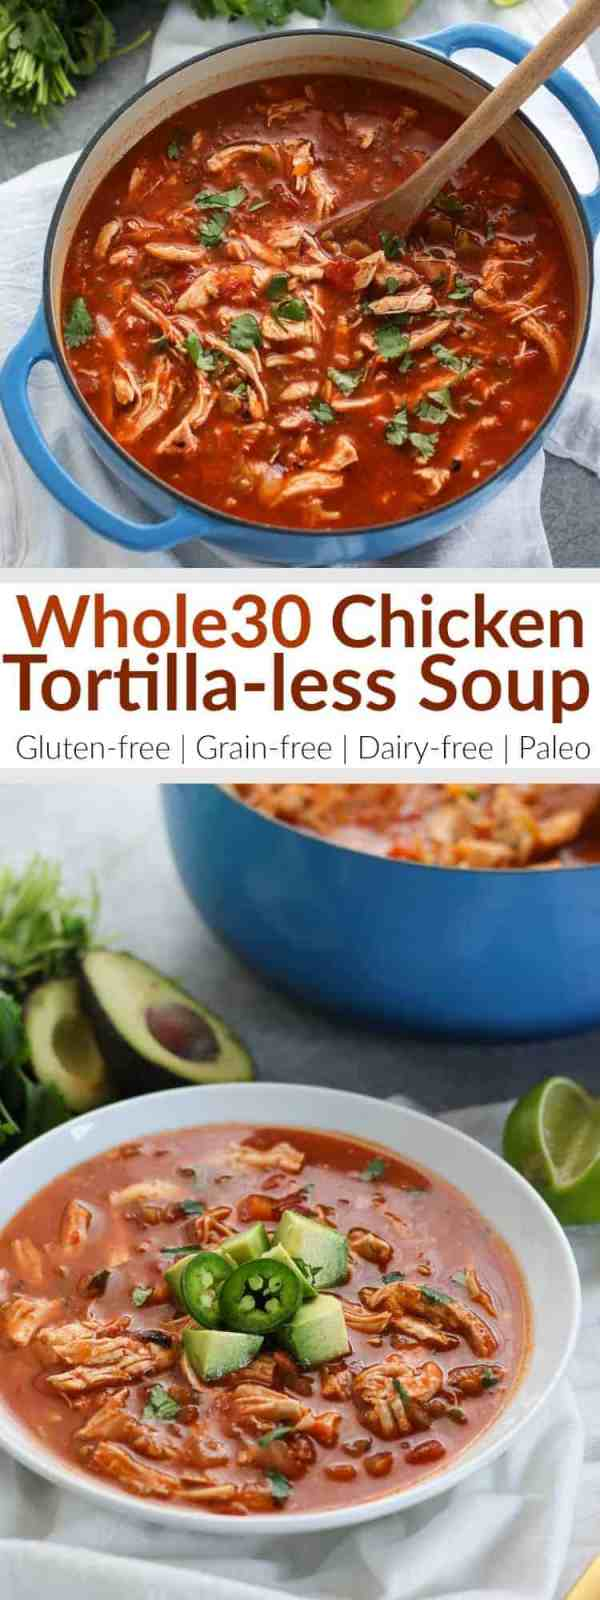 A hearty soup with the flavors of your favorite Mexican dishes. We've kept it Whole30-compliant by leaving out the traditional tortilla strips but if you're missing that little crunch on top, we suggest adding thinly sliced radishes or jicama. | Whole30 | Gluten-free | Grain-free | Paleo | Dairy-free | https://therealfoodrds.com/chicken-tortilla-less-soup/